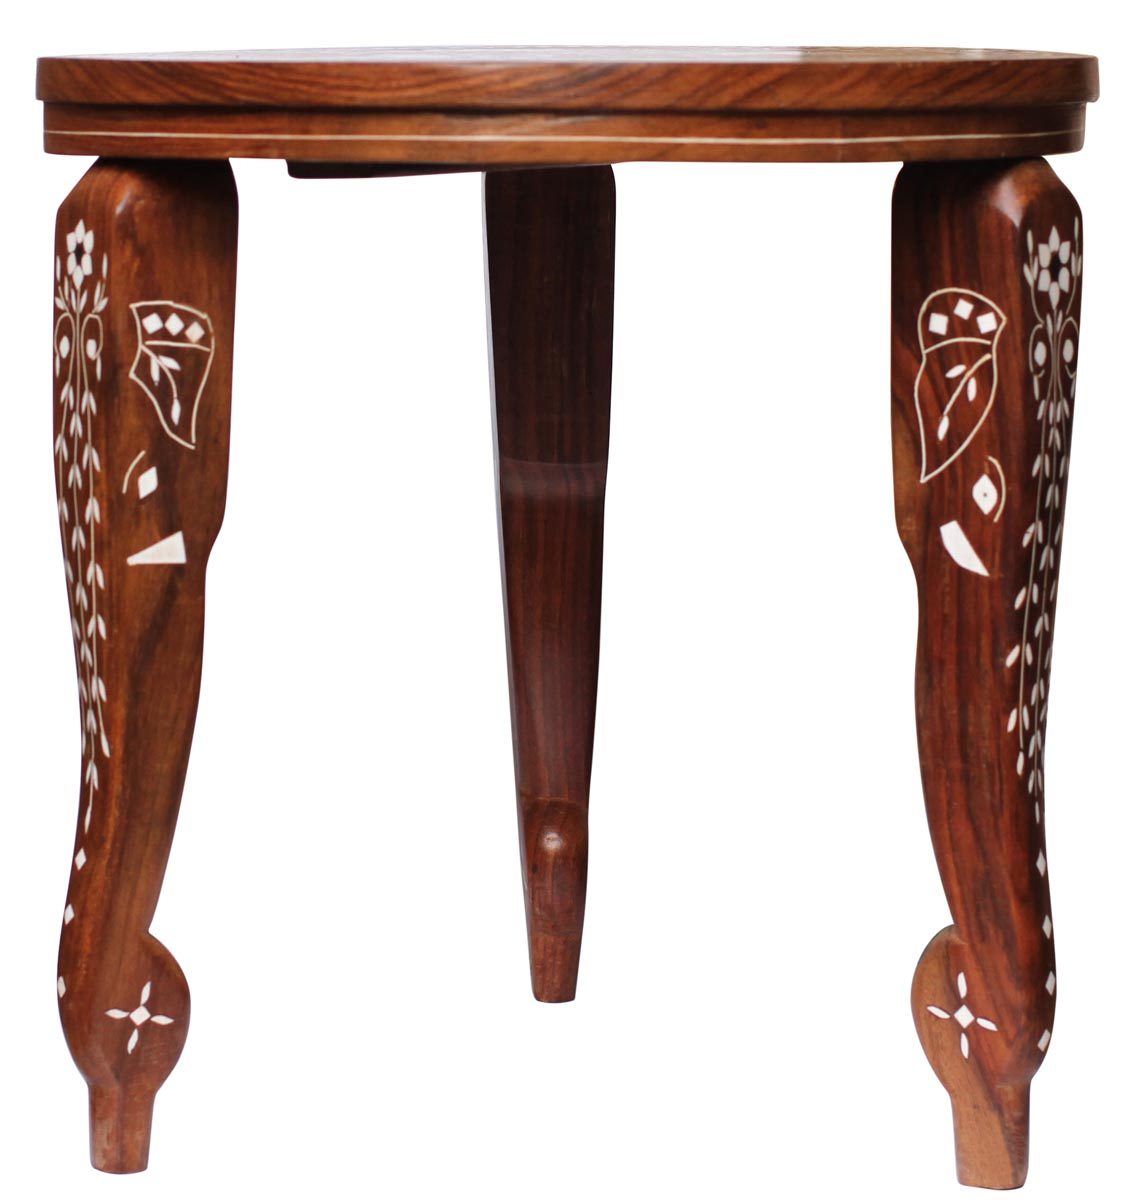 whole handmade leg stand round wooden accent table with elephant bulk side top removable legs vintage ese lamps target sideboard glass end tables and coffee home accents